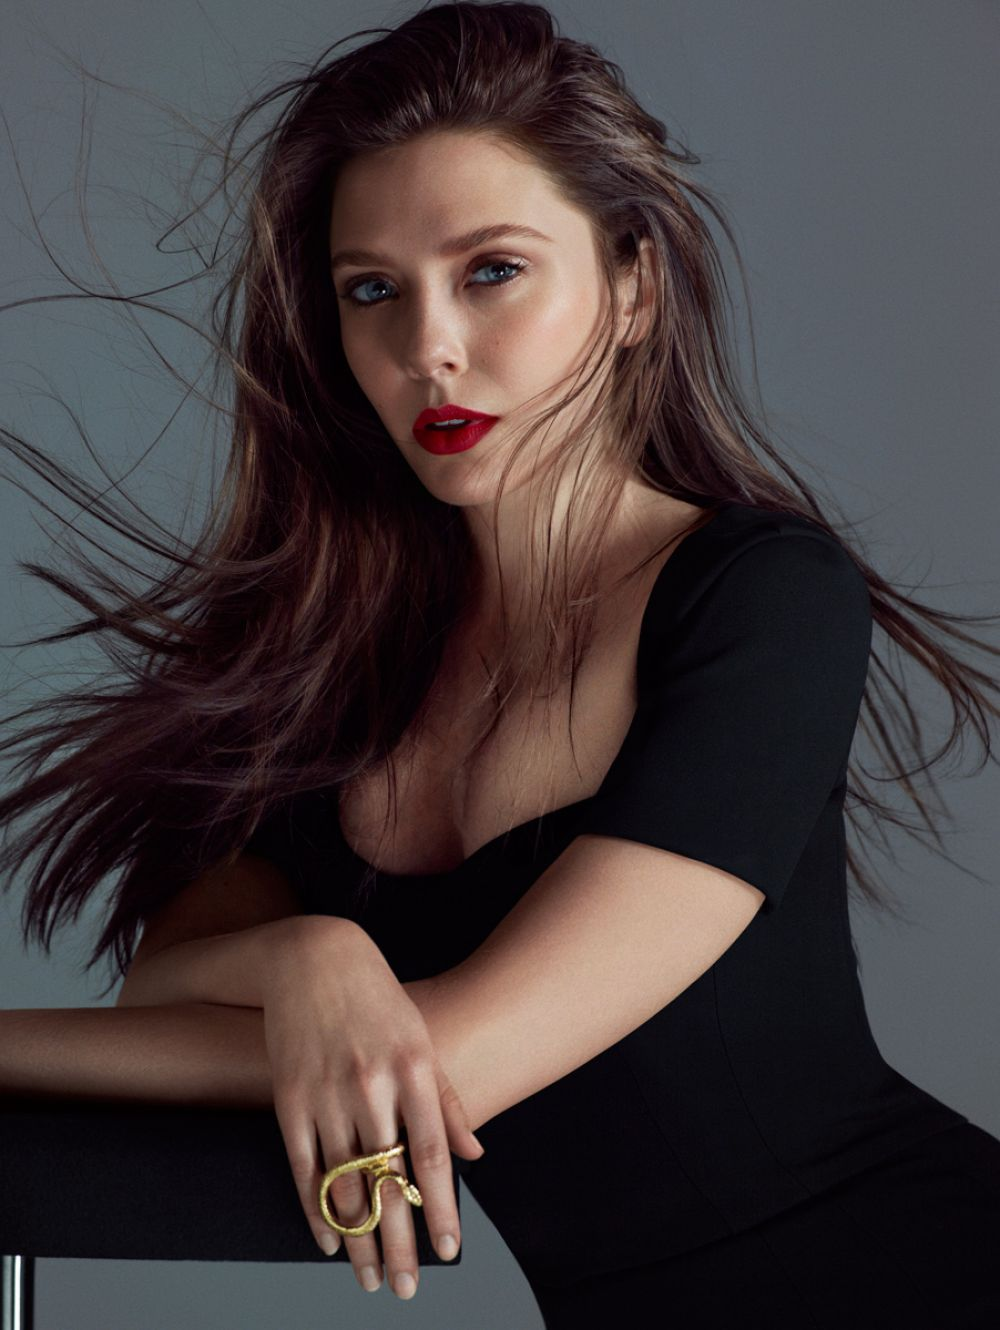 ELIZABETH OLSEN in Flaunt Magazine, May 2014 Issue